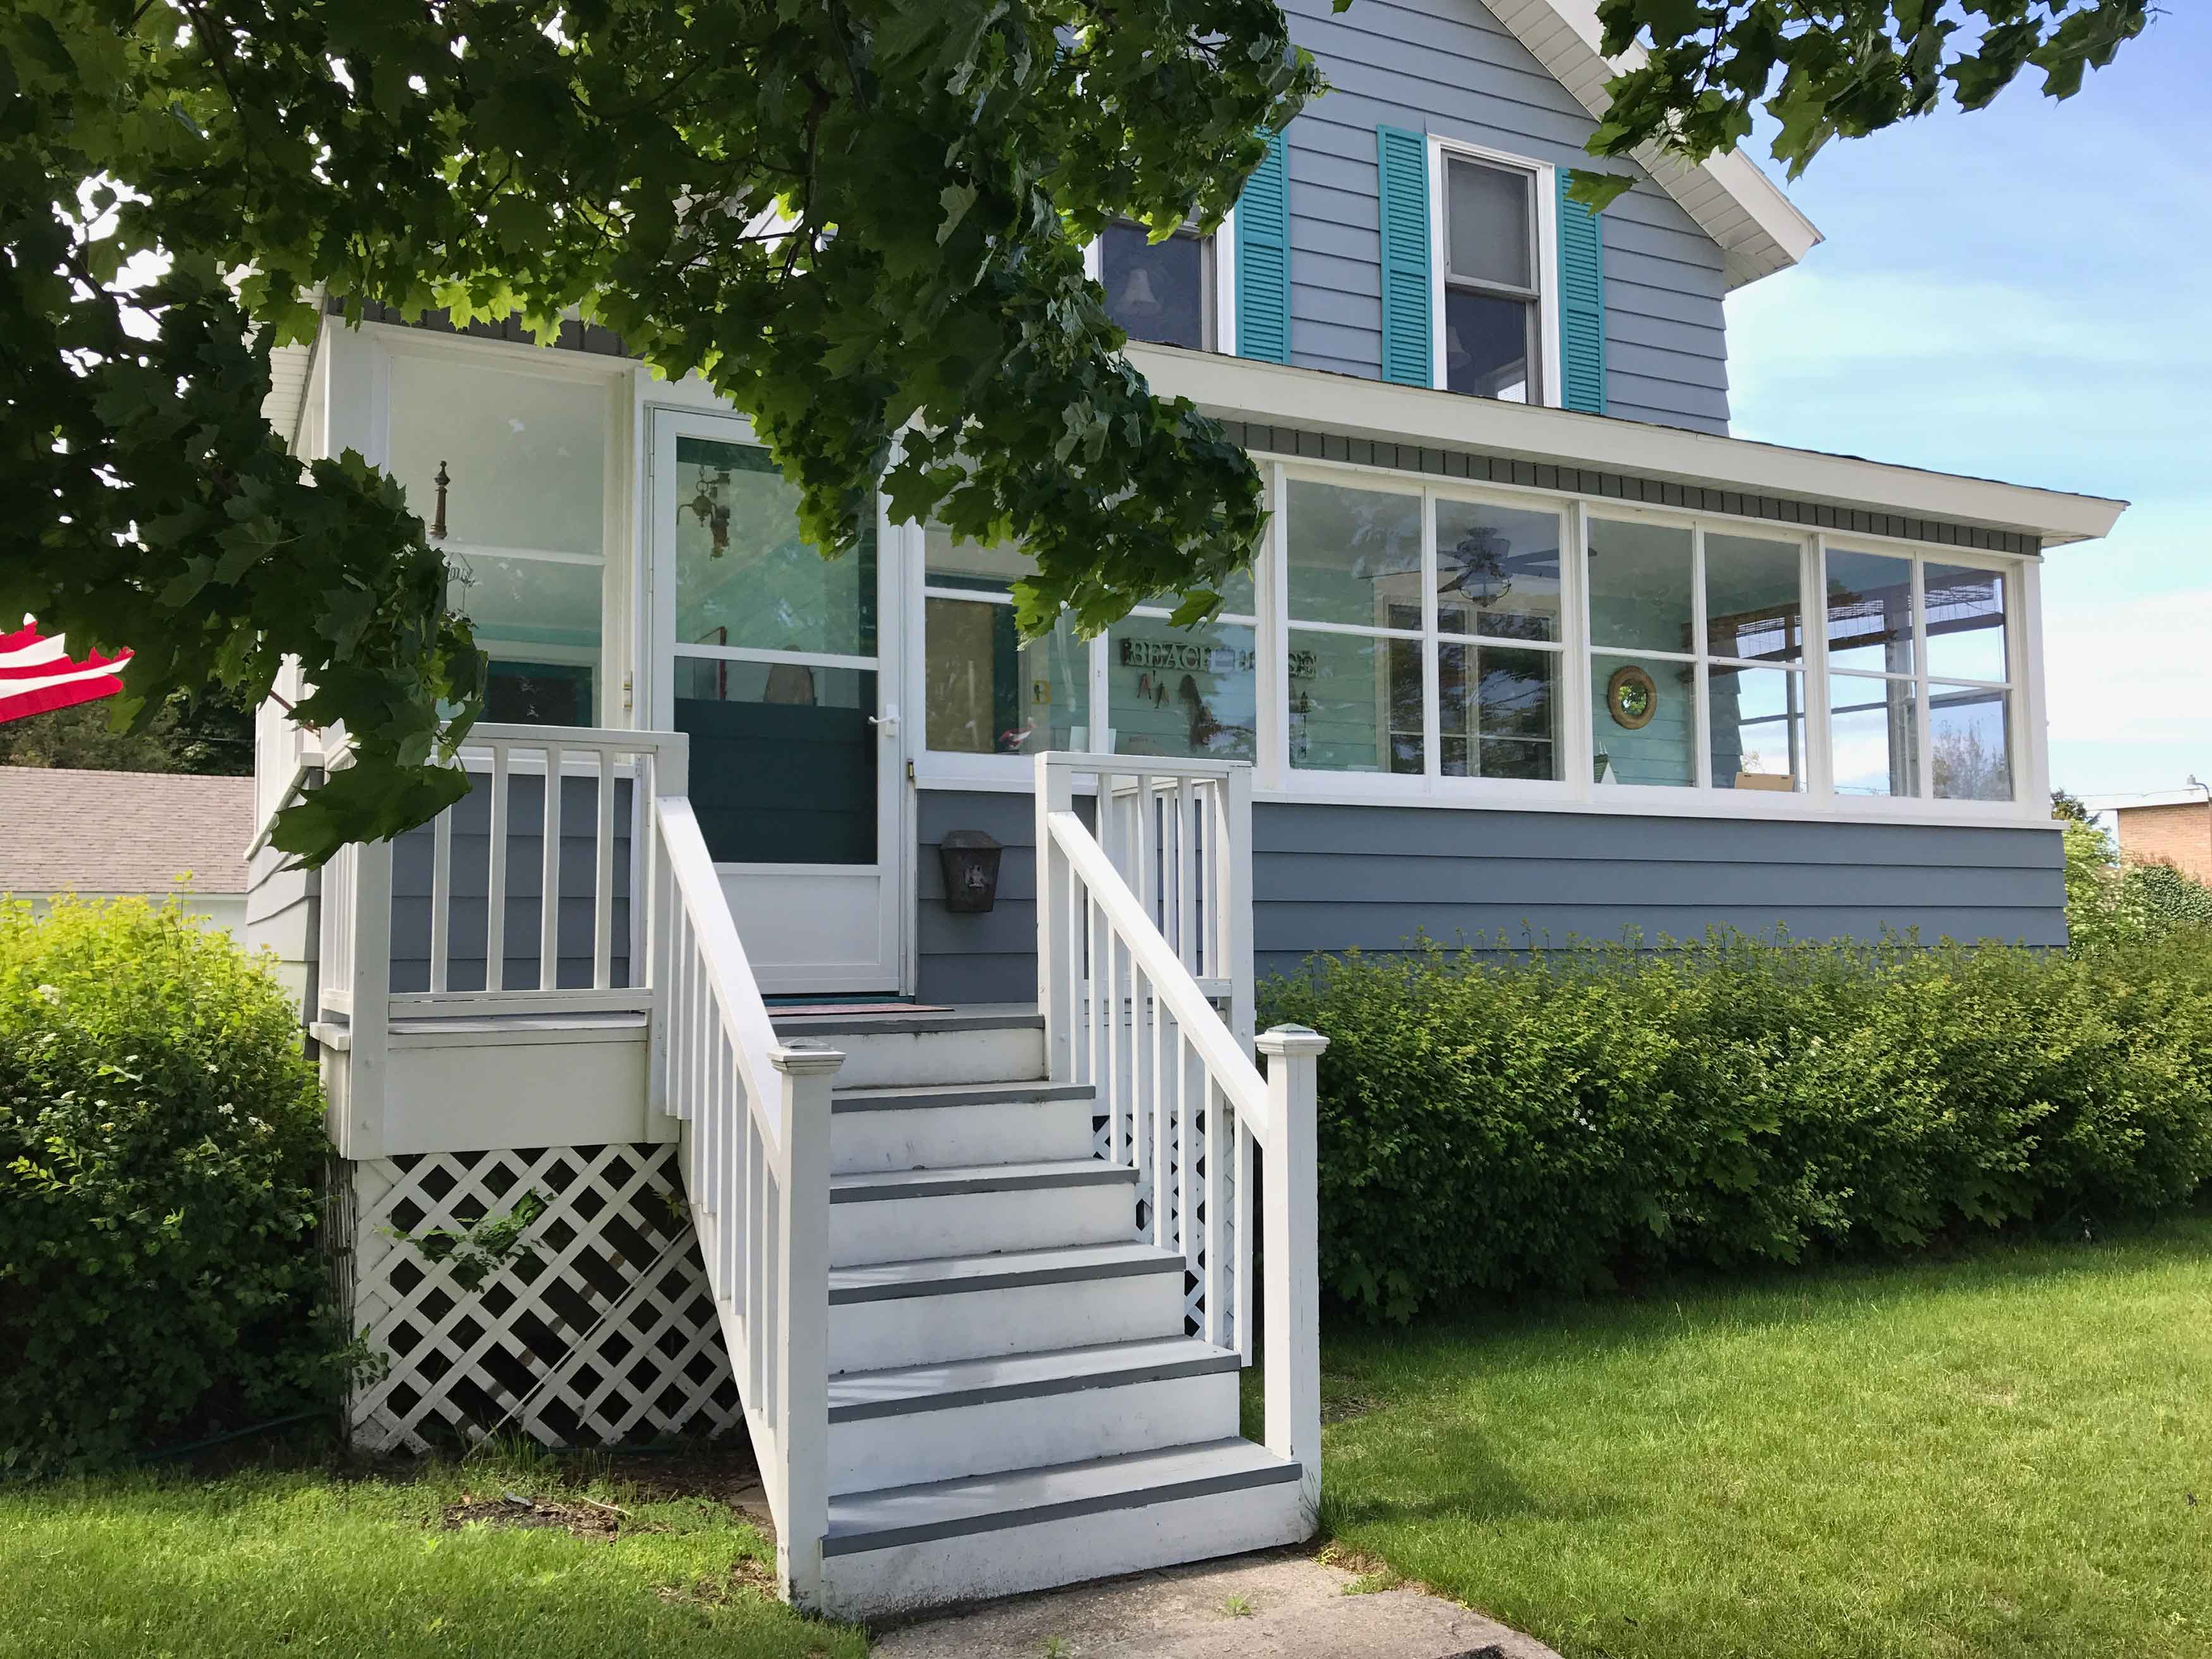 cottage for lake rental haven rent michigan img cottages jpg south